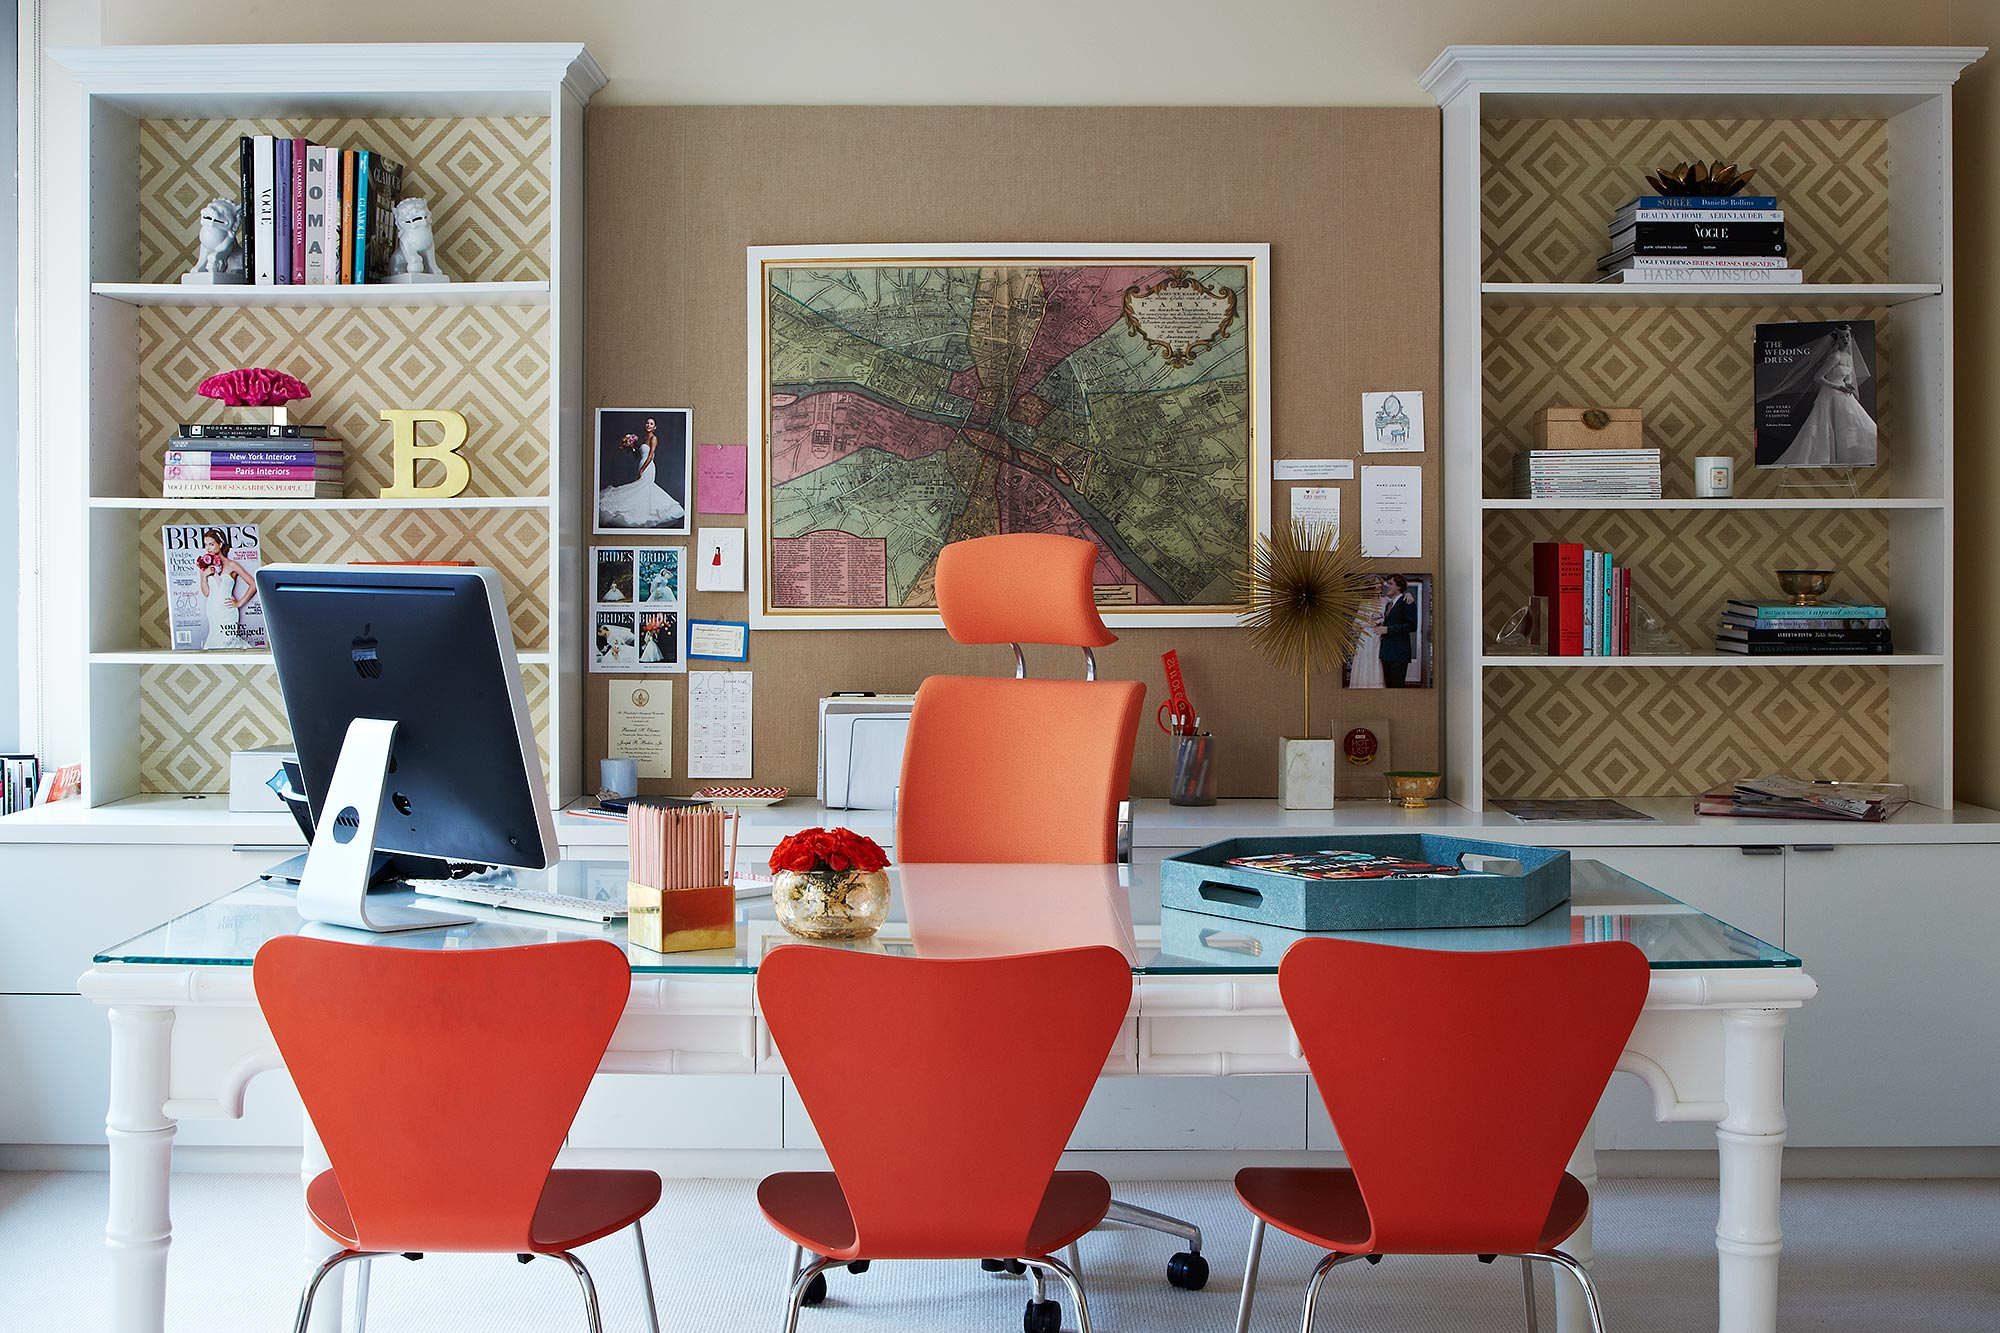 The desk area in Brides Editor-in-Chief Keija Minor's light-filled office.